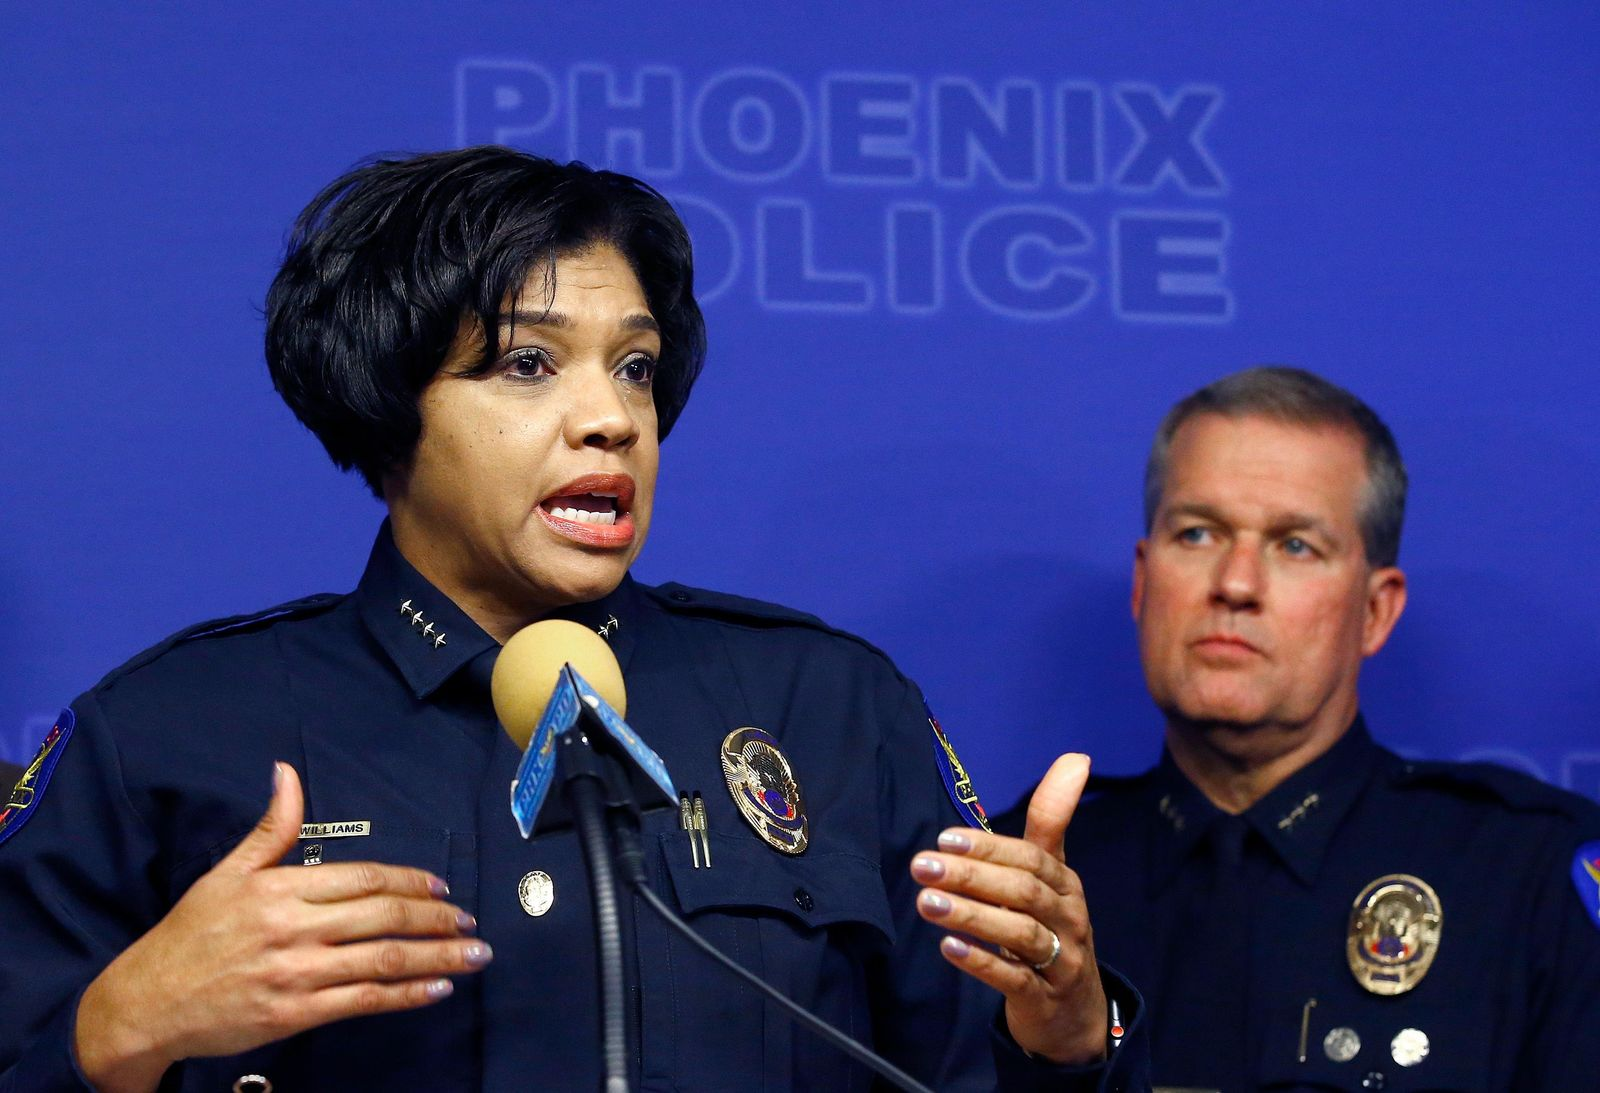 Phoenix Police Chief Jeri Williams, left, announces the arrest of Nathan Sutherland, a licensed practical nurse, on one count of sexual assault and one count of vulnerable adult abuse on an incapacitated woman who gave birth last month at a long-term health care facility Wednesday, Jan. 23. (AP Photo/Ross D. Franklin)